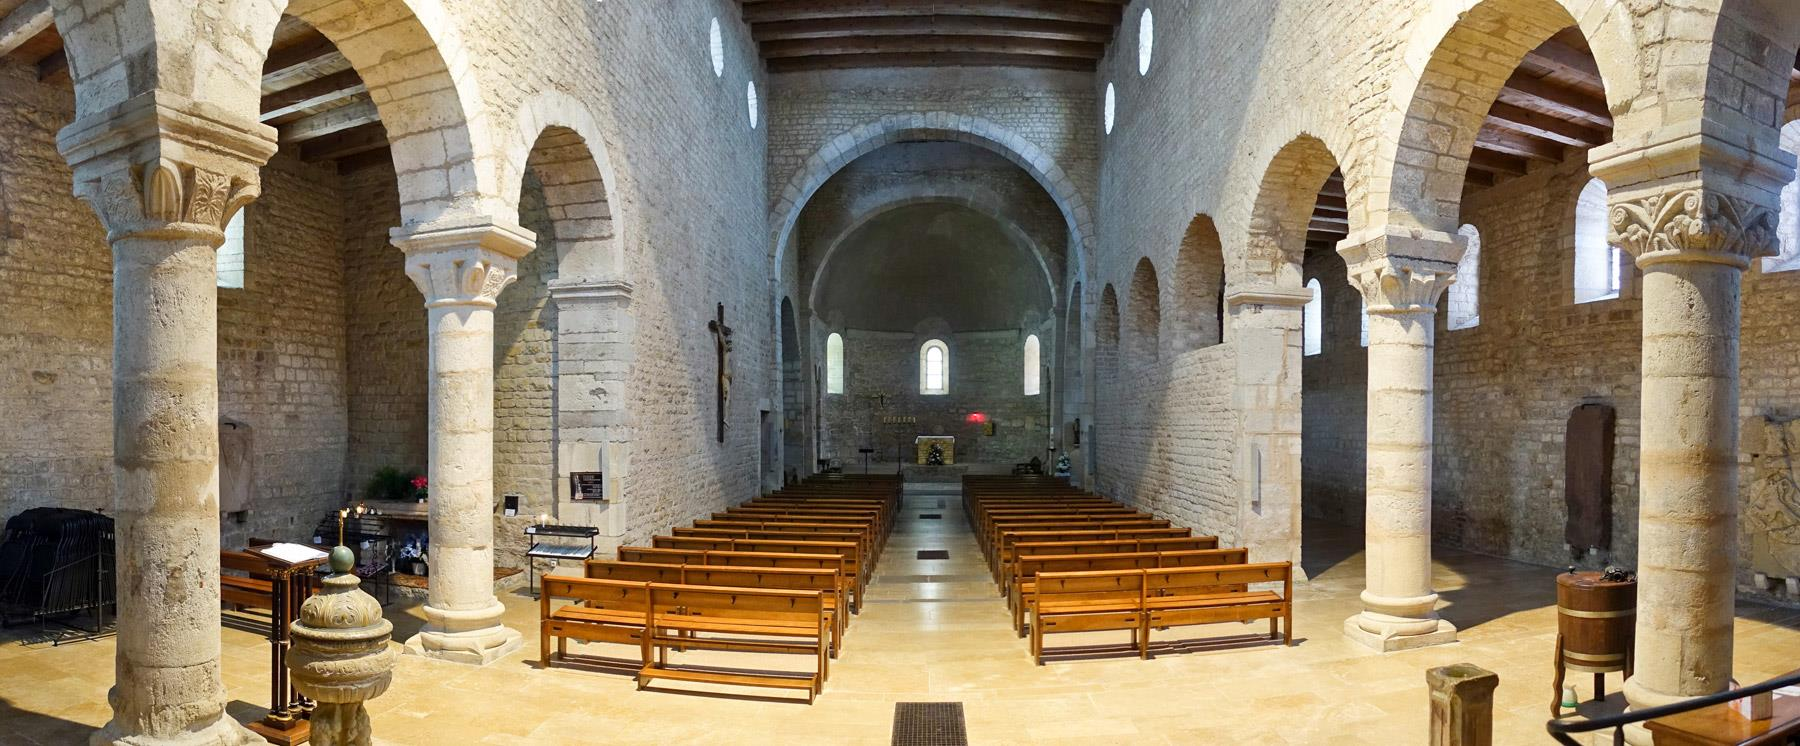 St Jacques Romanesque Church from the 12th century